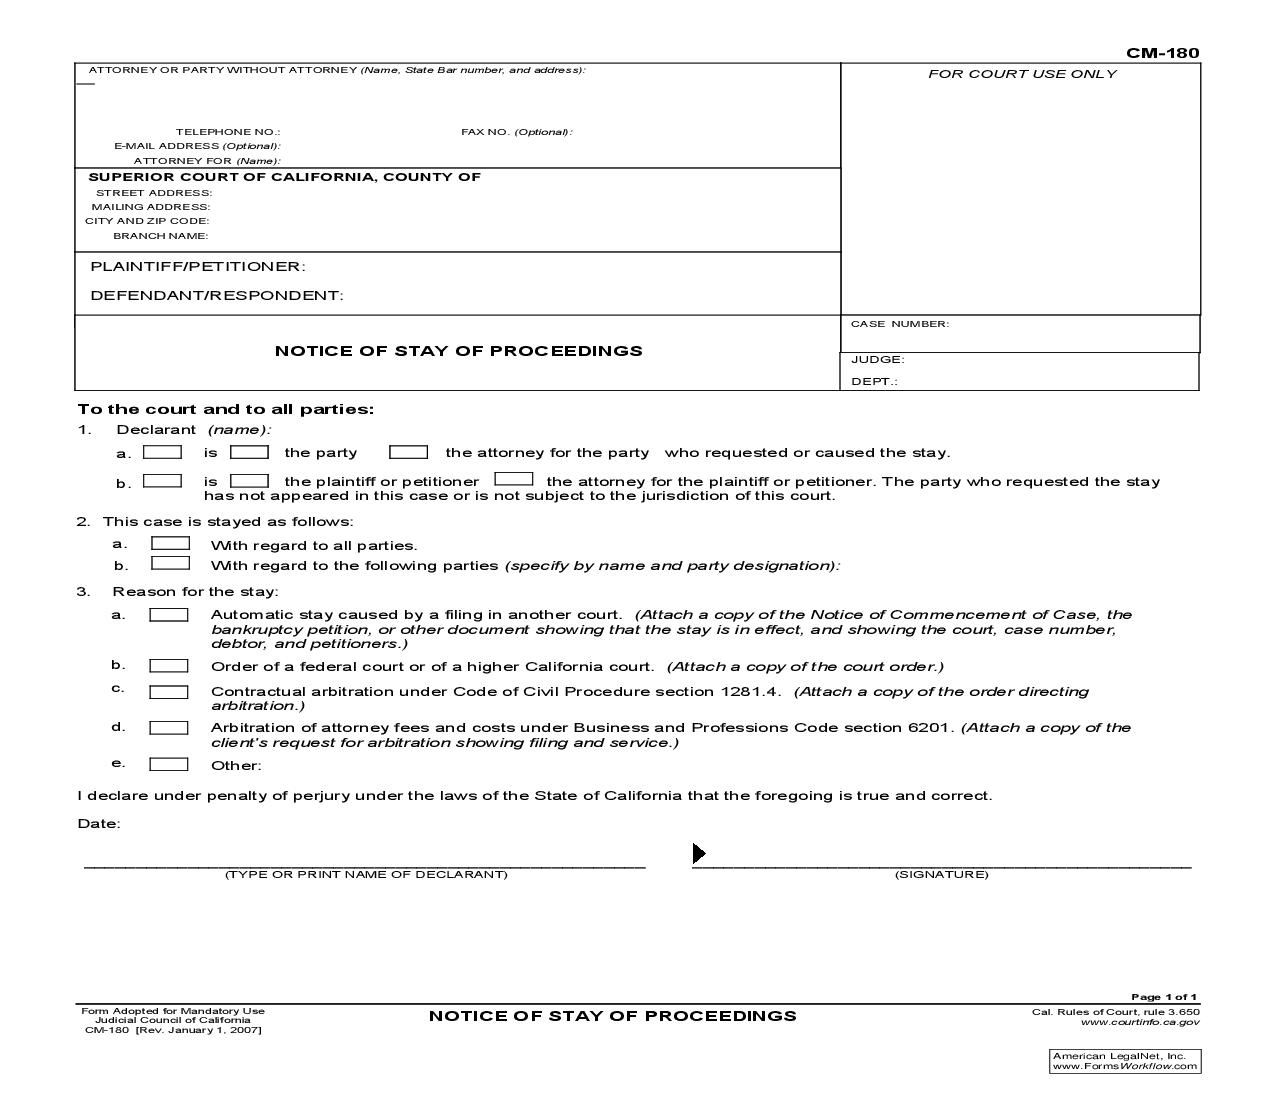 Judicial Council Form Complaint This Is A California Form That Can Be Used For Case Management .